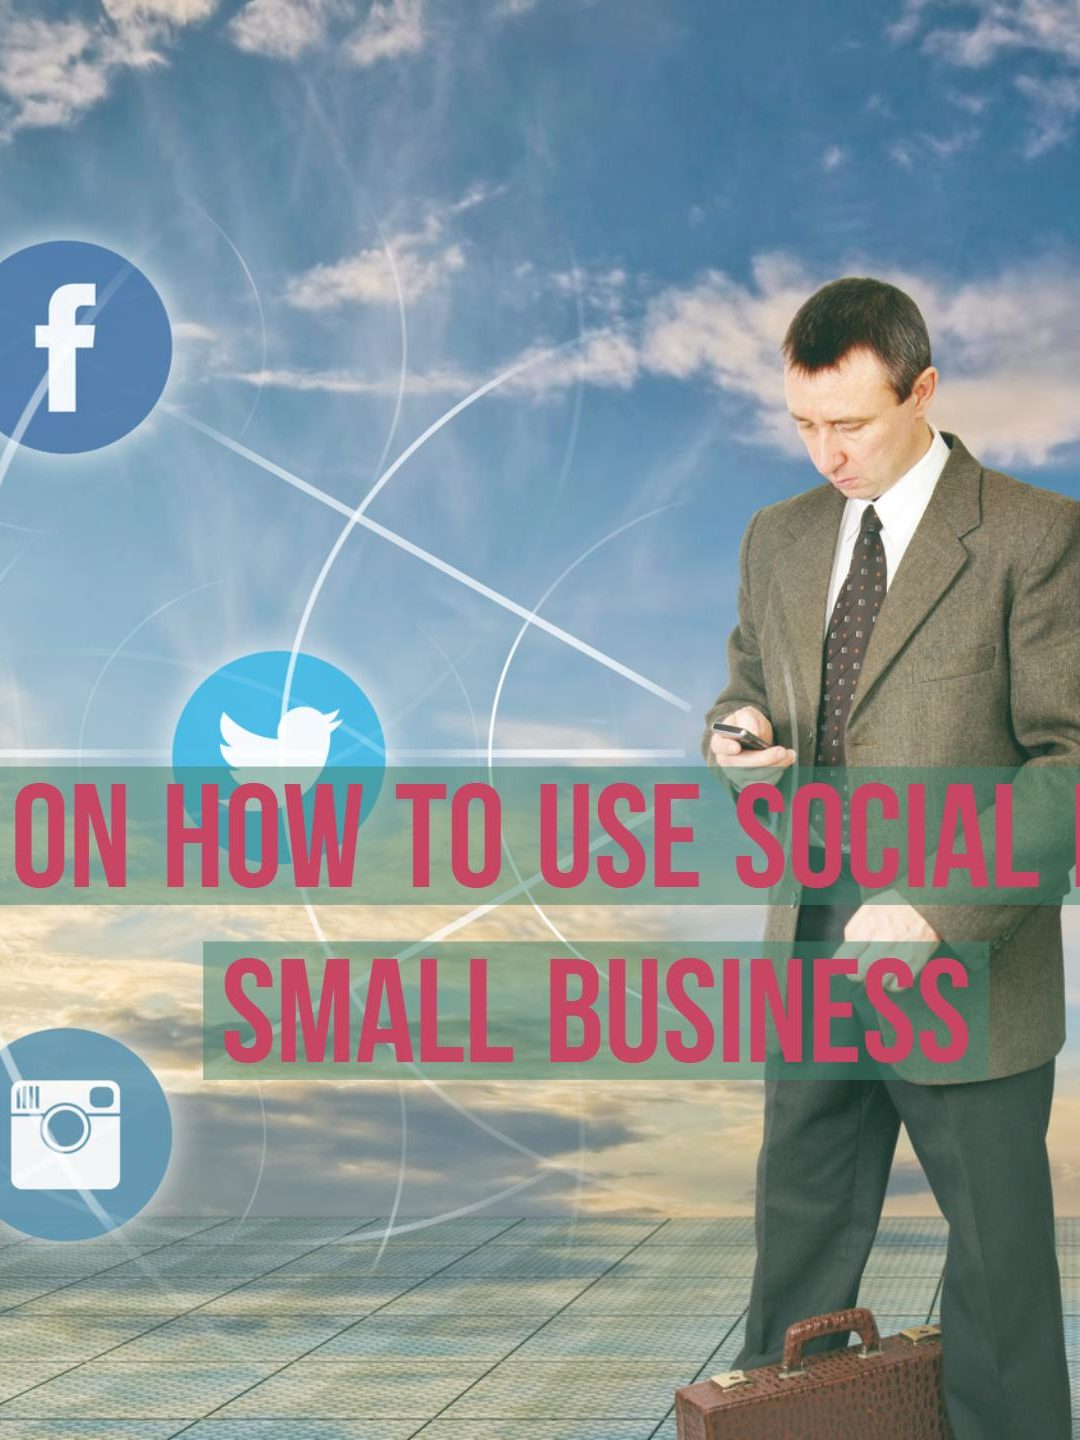 10 Tips on How to Use Social Media for Small Business